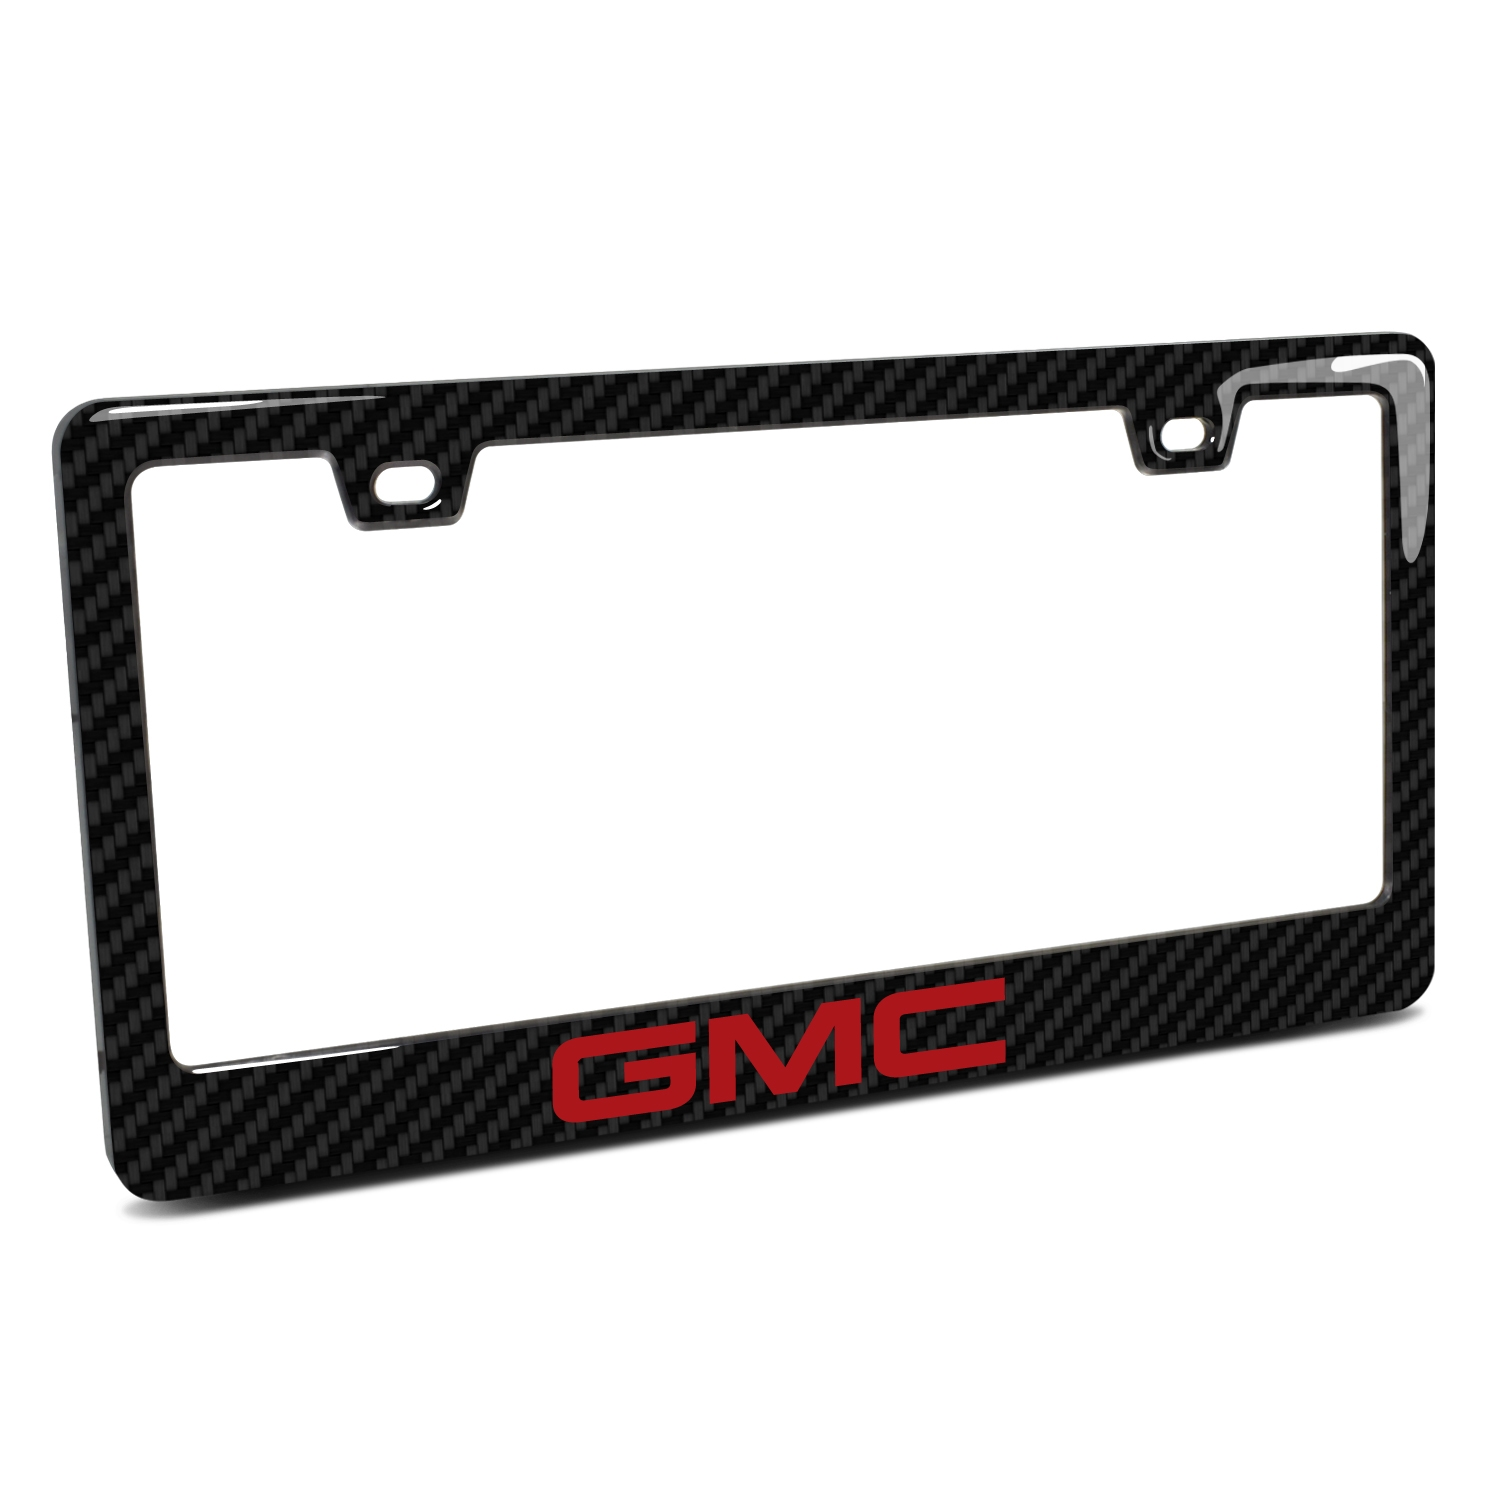 GMC in Red in 3D on Real 3K Carbon Fiber Finish ABS Plastic License Plate Frame